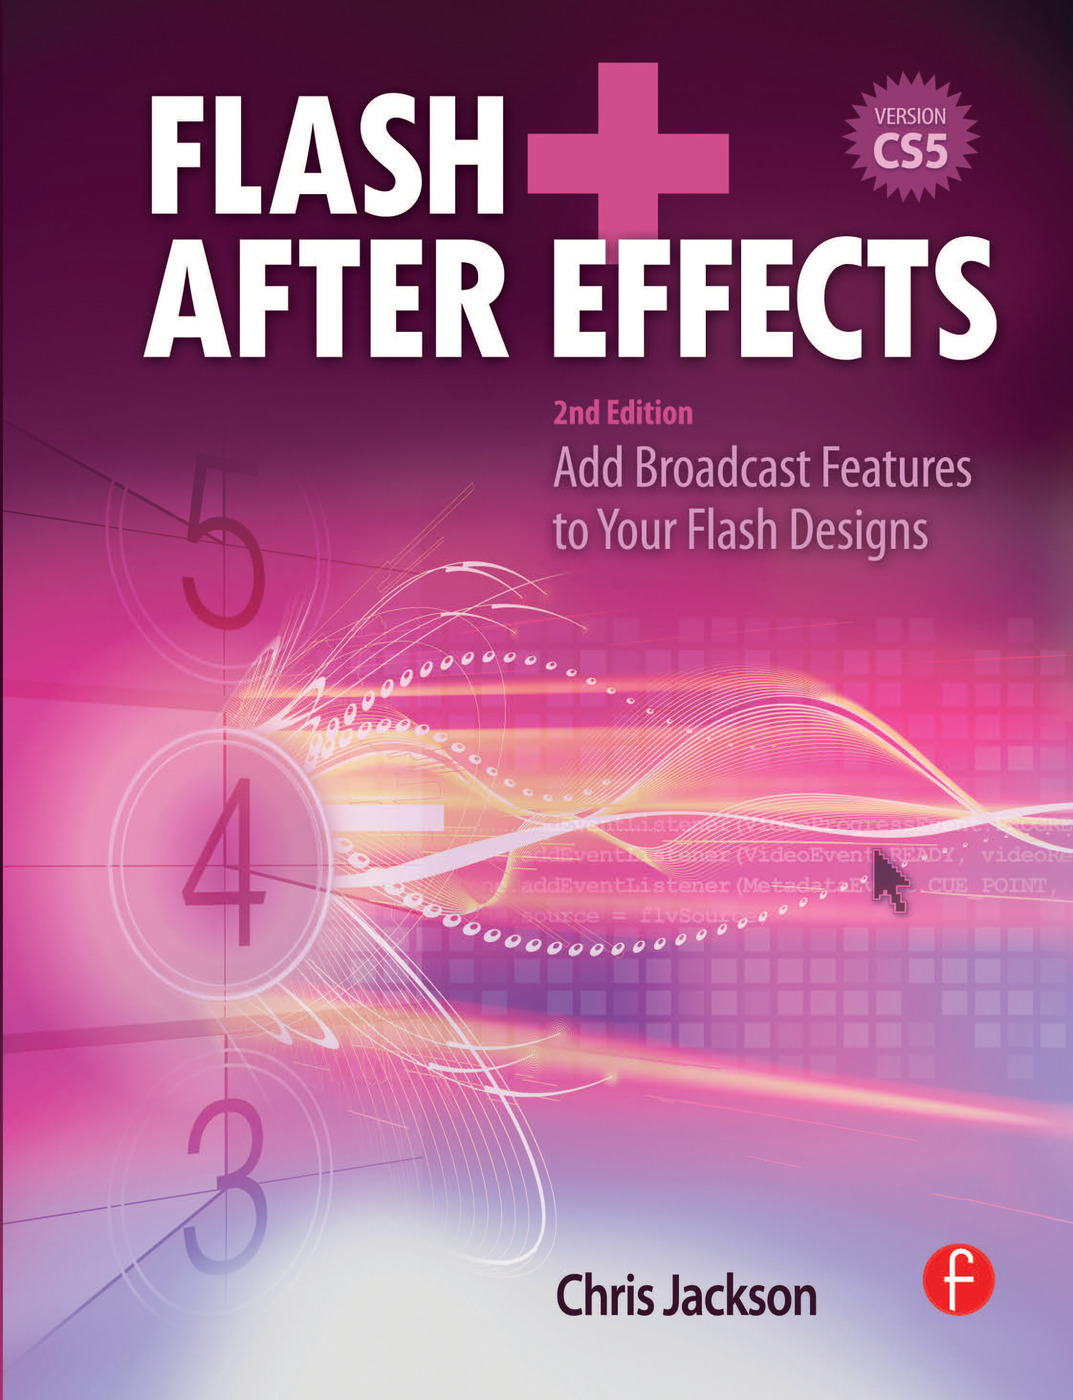 Flash + After Effects: Add Broadcast Features to Your Flash Designs book cover